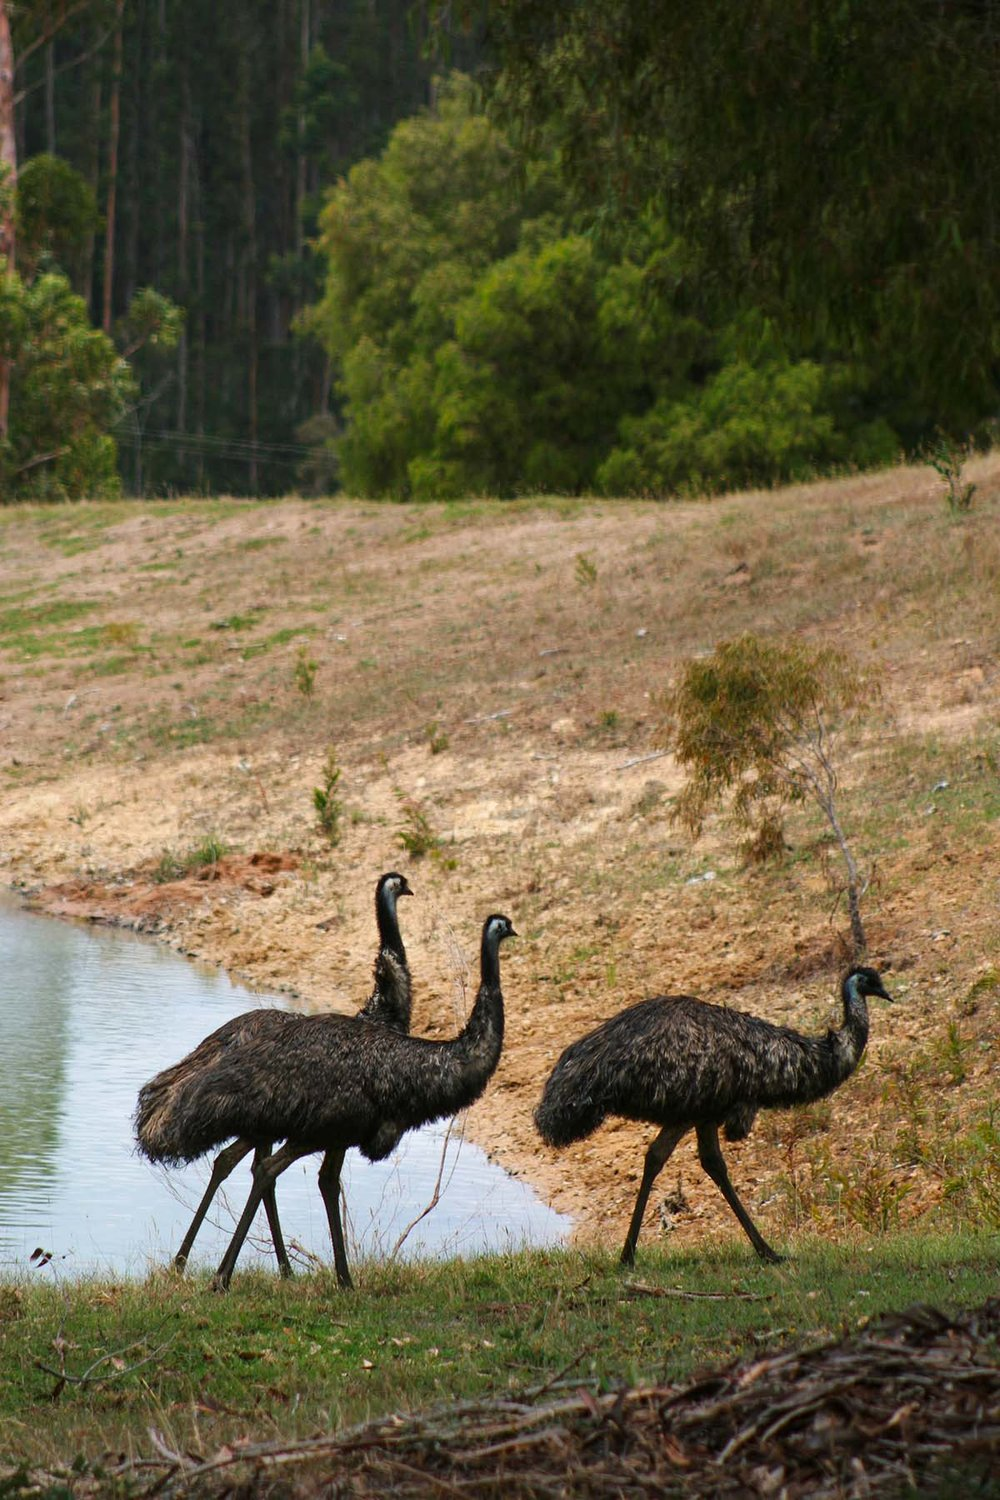 Emus_resized.jpg